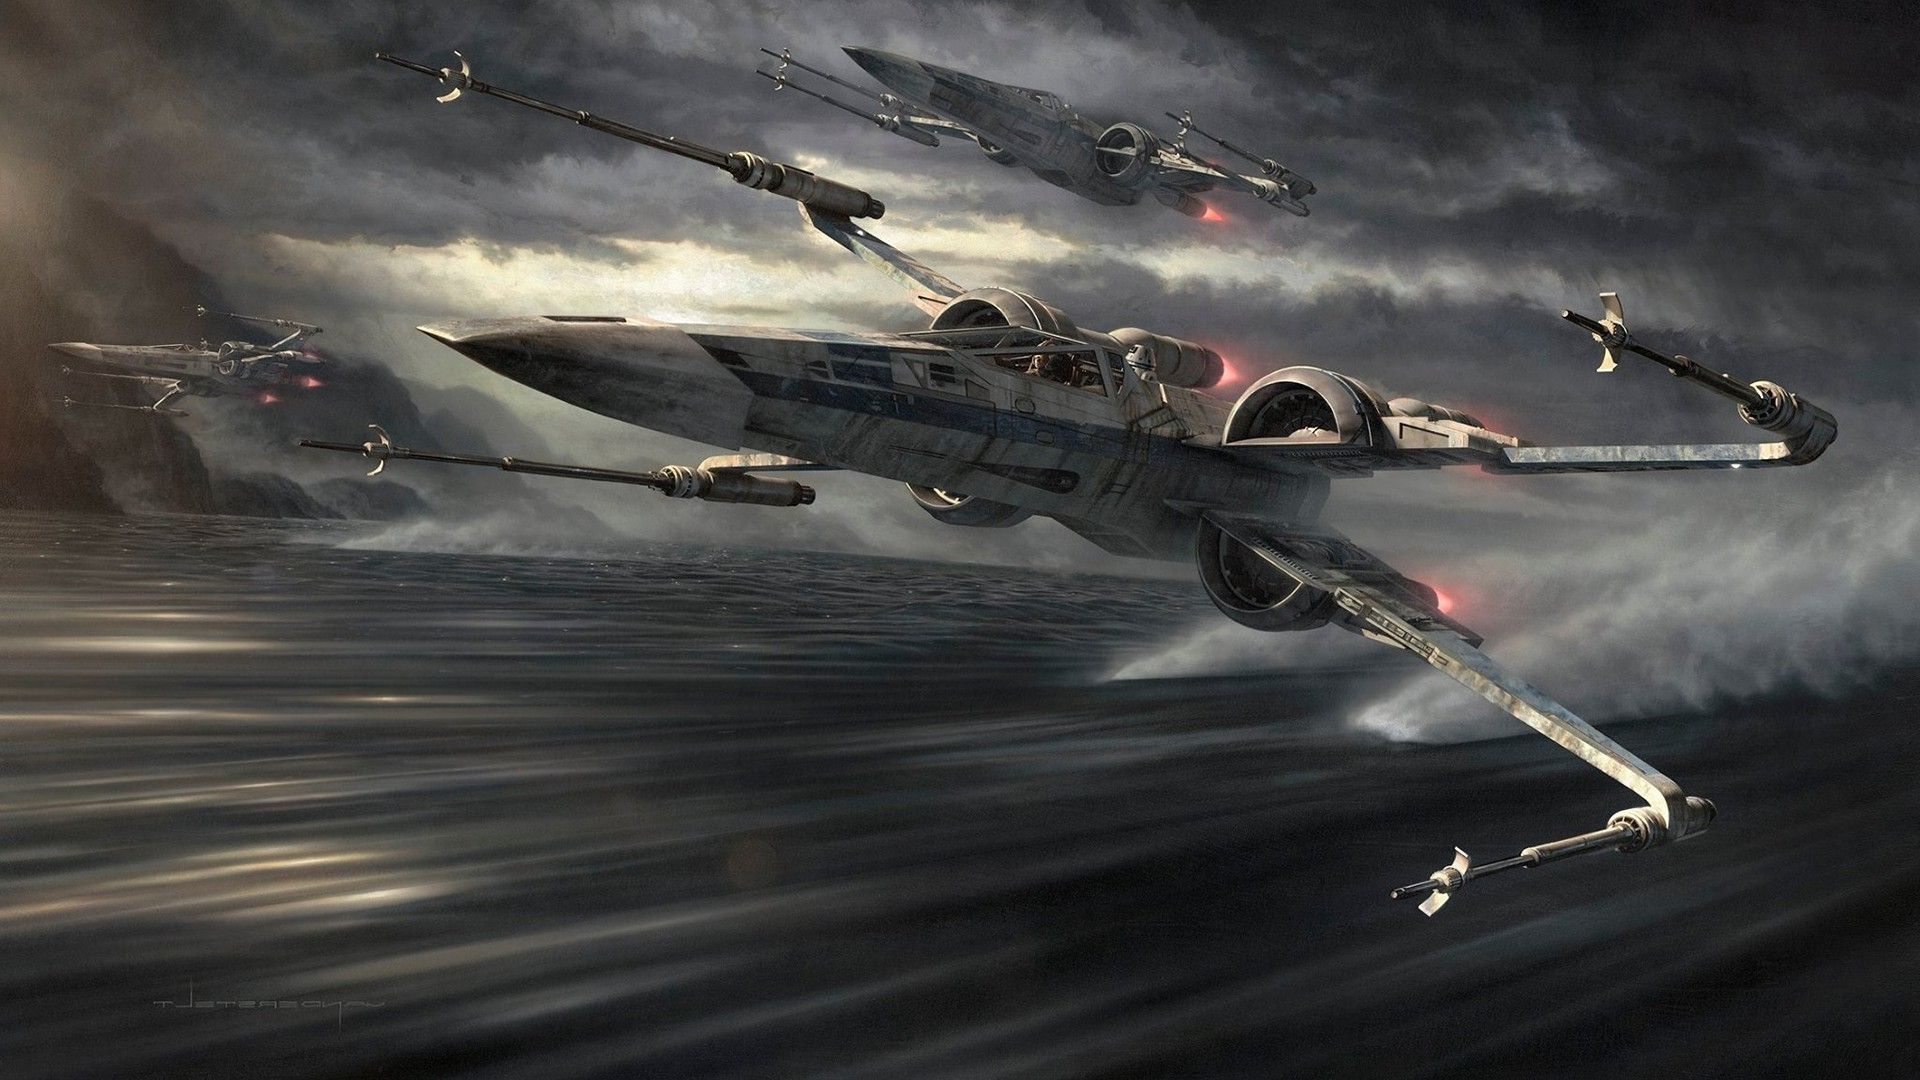 1920x1080 Download Hd Wallpapers Of 301401 X Wing Star Wars Free Download High Star Wars Wallpaper Star Wars Awesome Star Wars Ships